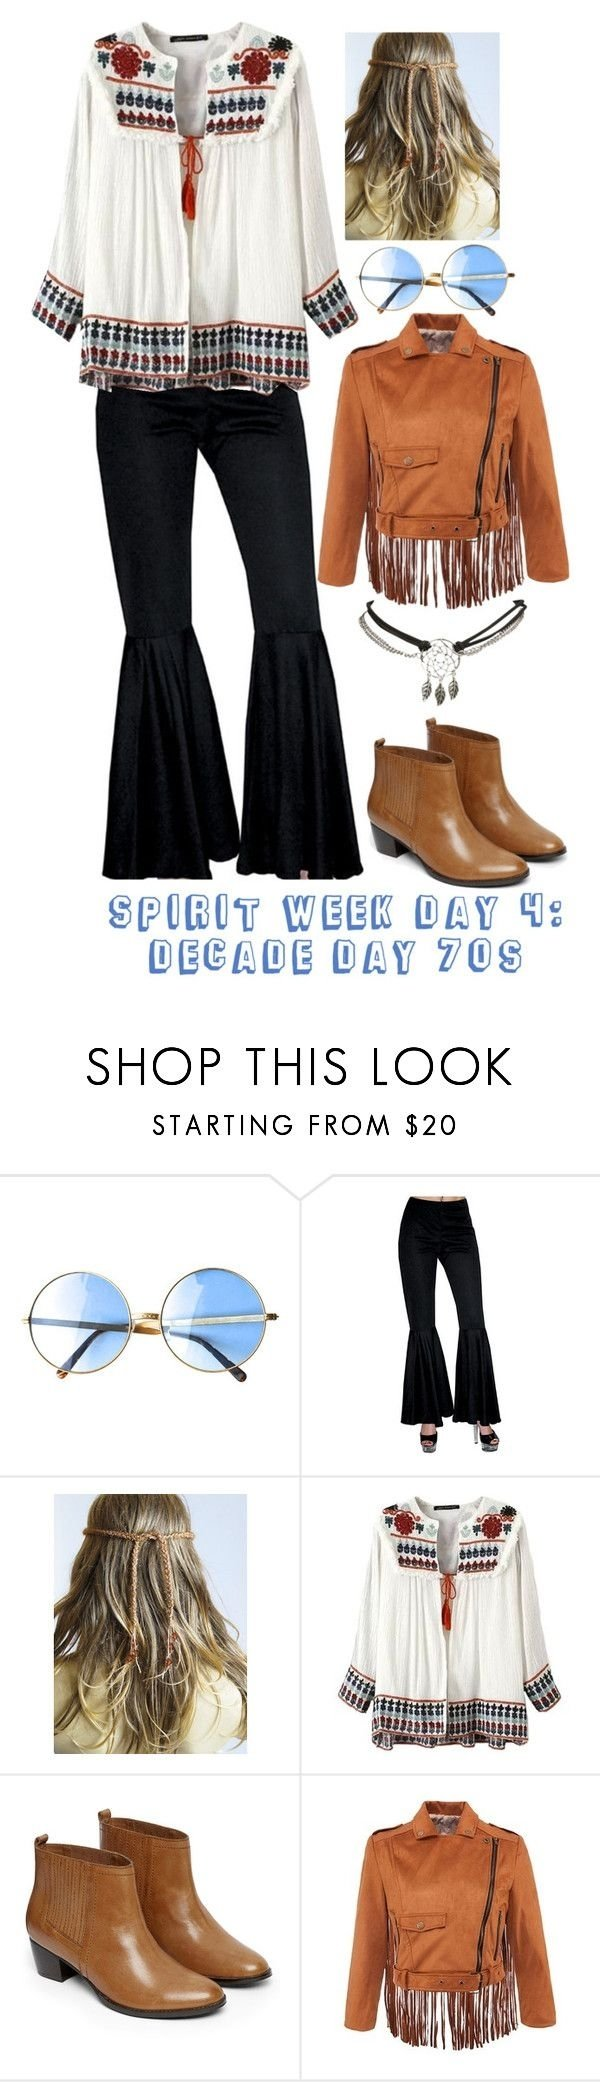 10 Gorgeous Homecoming Dress Up Day Ideas 293 best asb images on pinterest homecoming spirit week student 2021